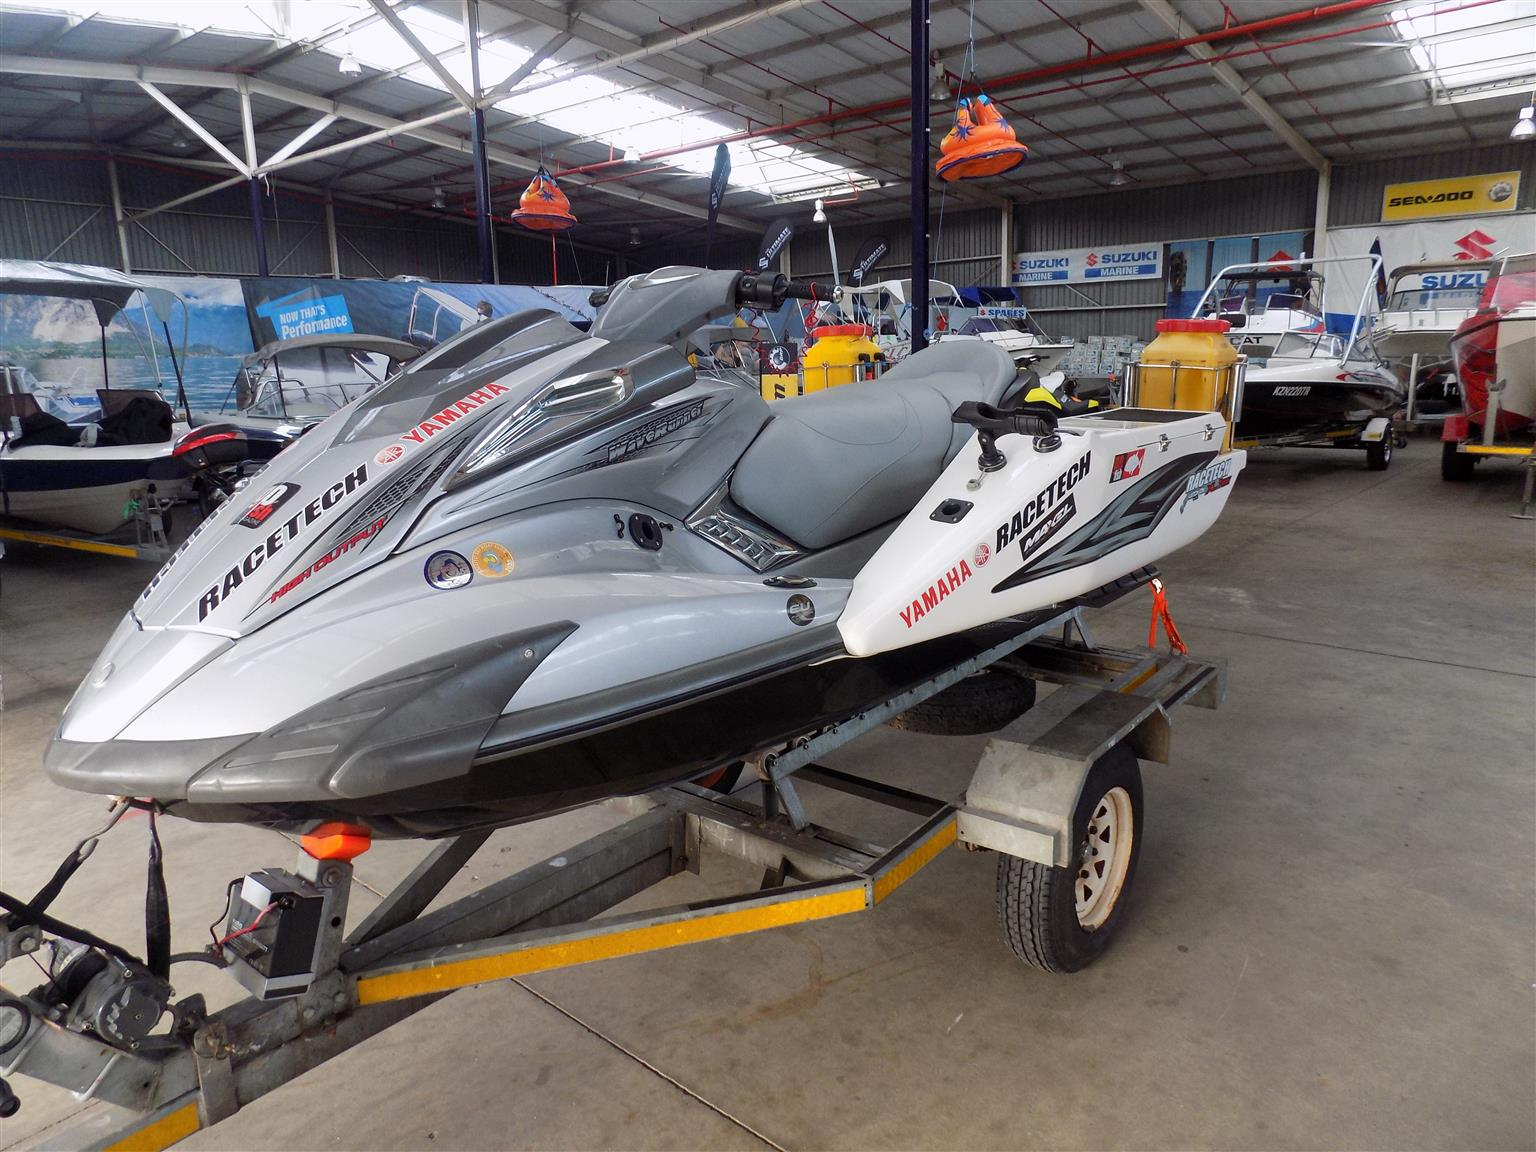 yamaha fx 1800 on trailer fully rigged for fishing